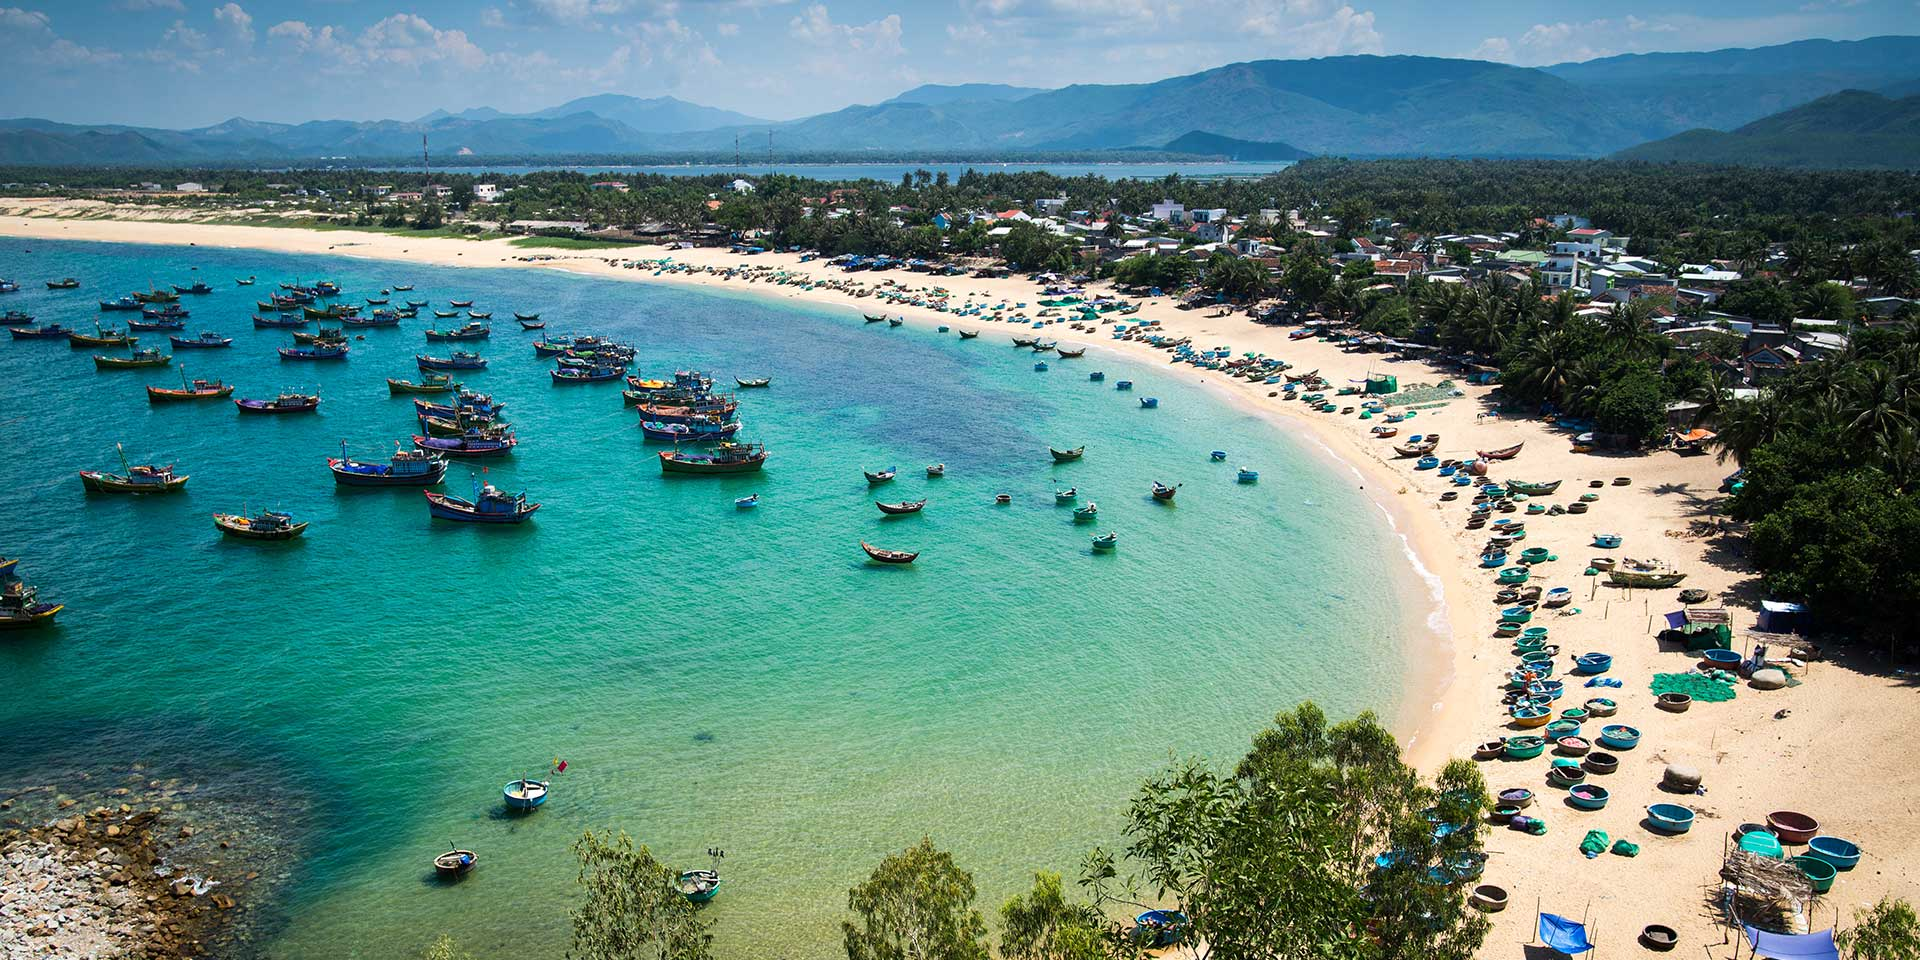 The Best Beaches in Vietnam - Travelogues from Remote Lands